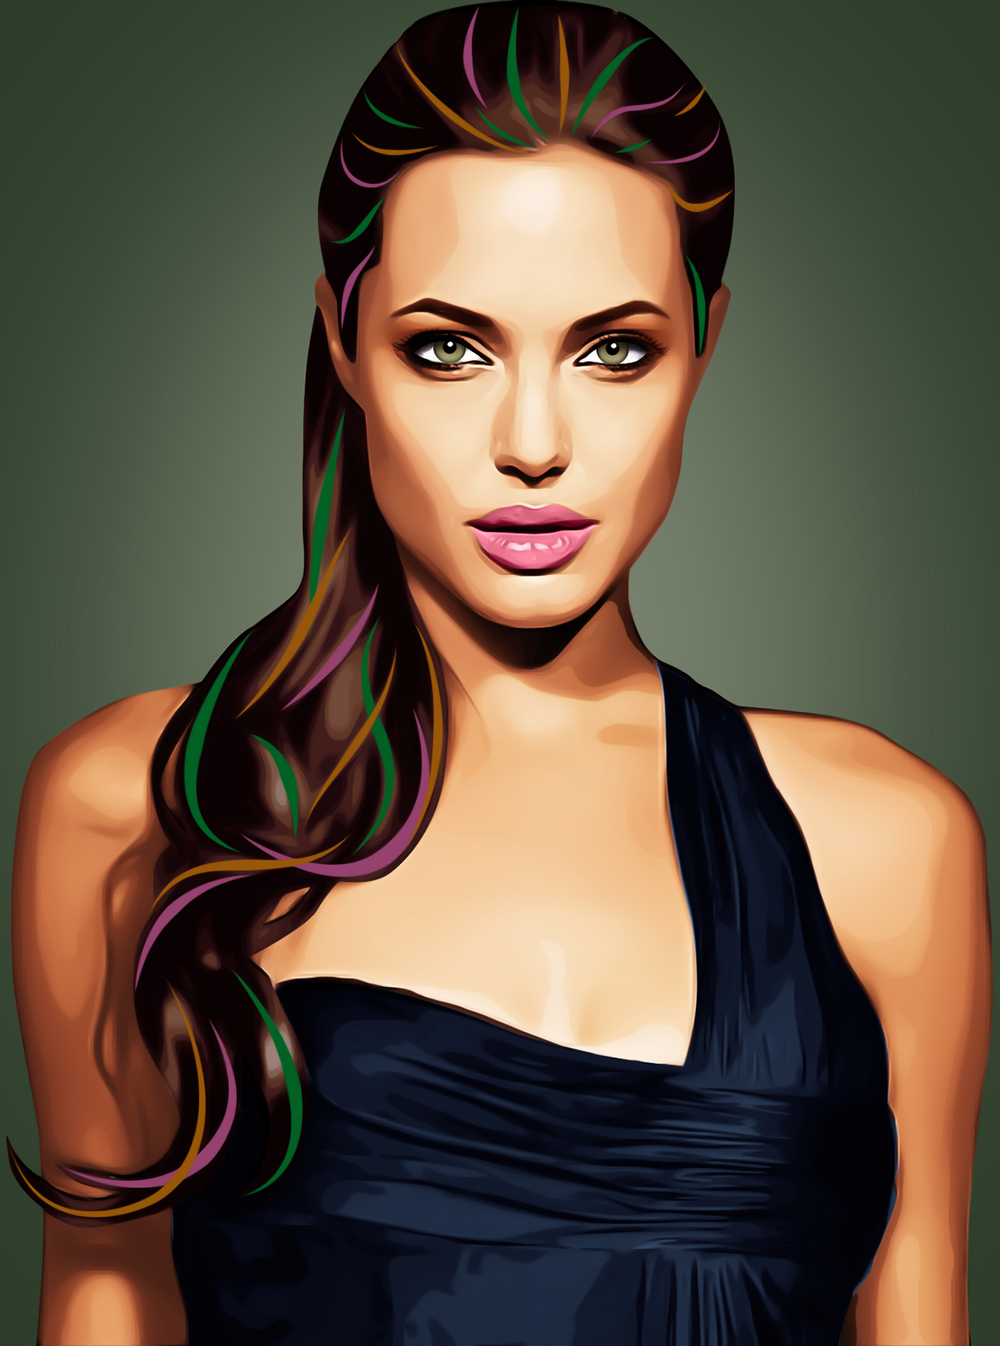 angelina_jolie_by_lilymagpie-d52ll22.jpg